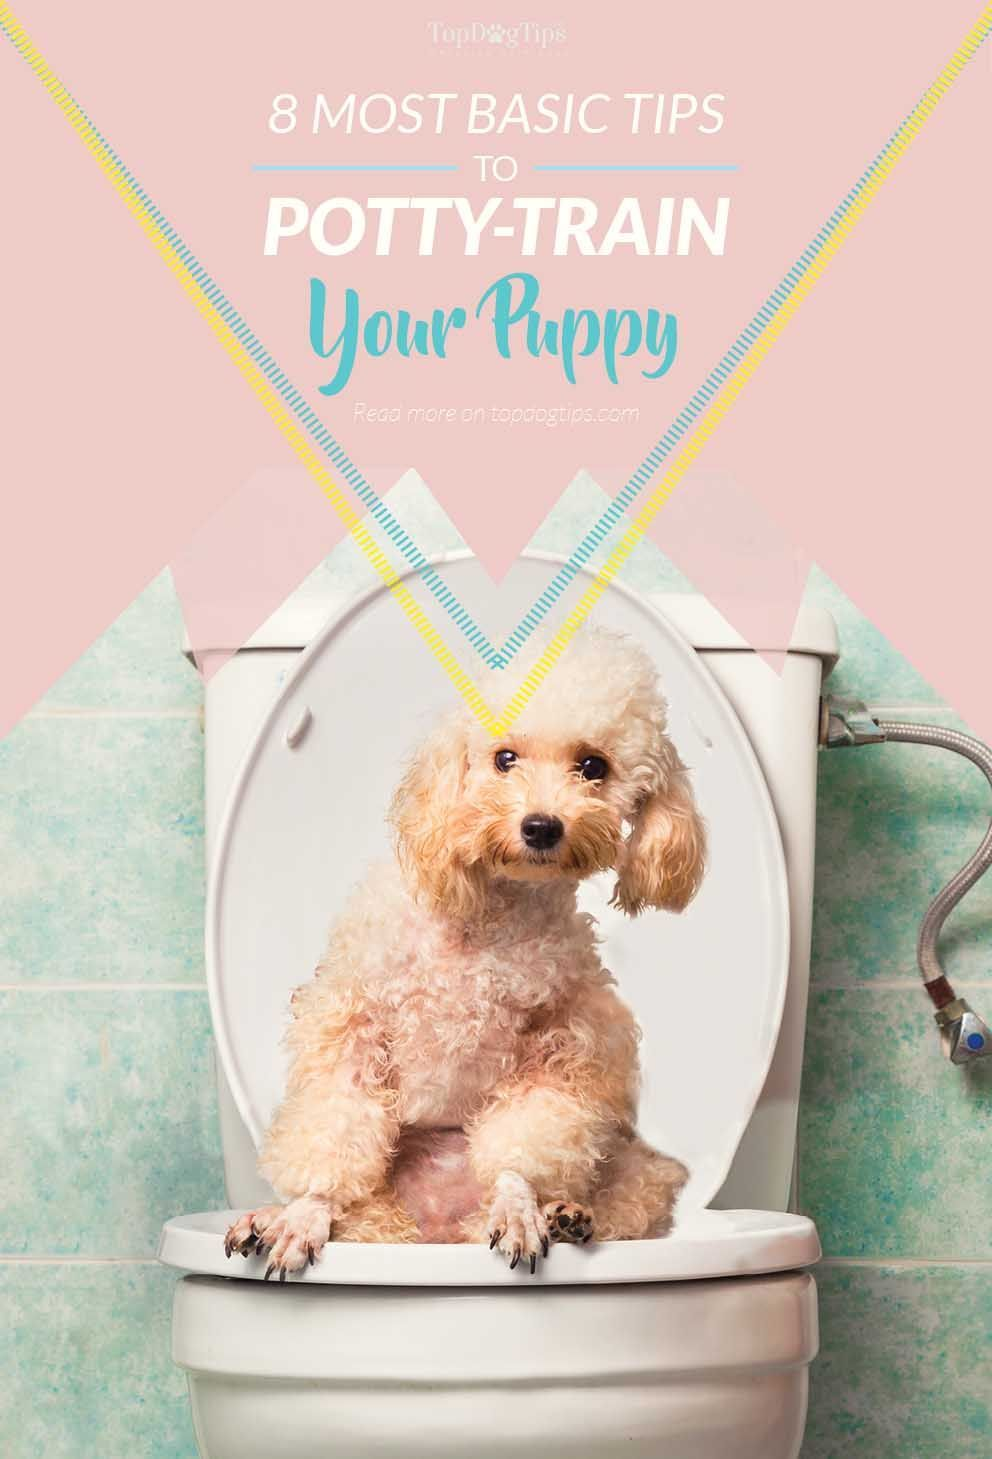 8 Basic Tips For Potty Training A Puppy Training Your Puppy Cat Toilet Training Puppy Potty Training Tips